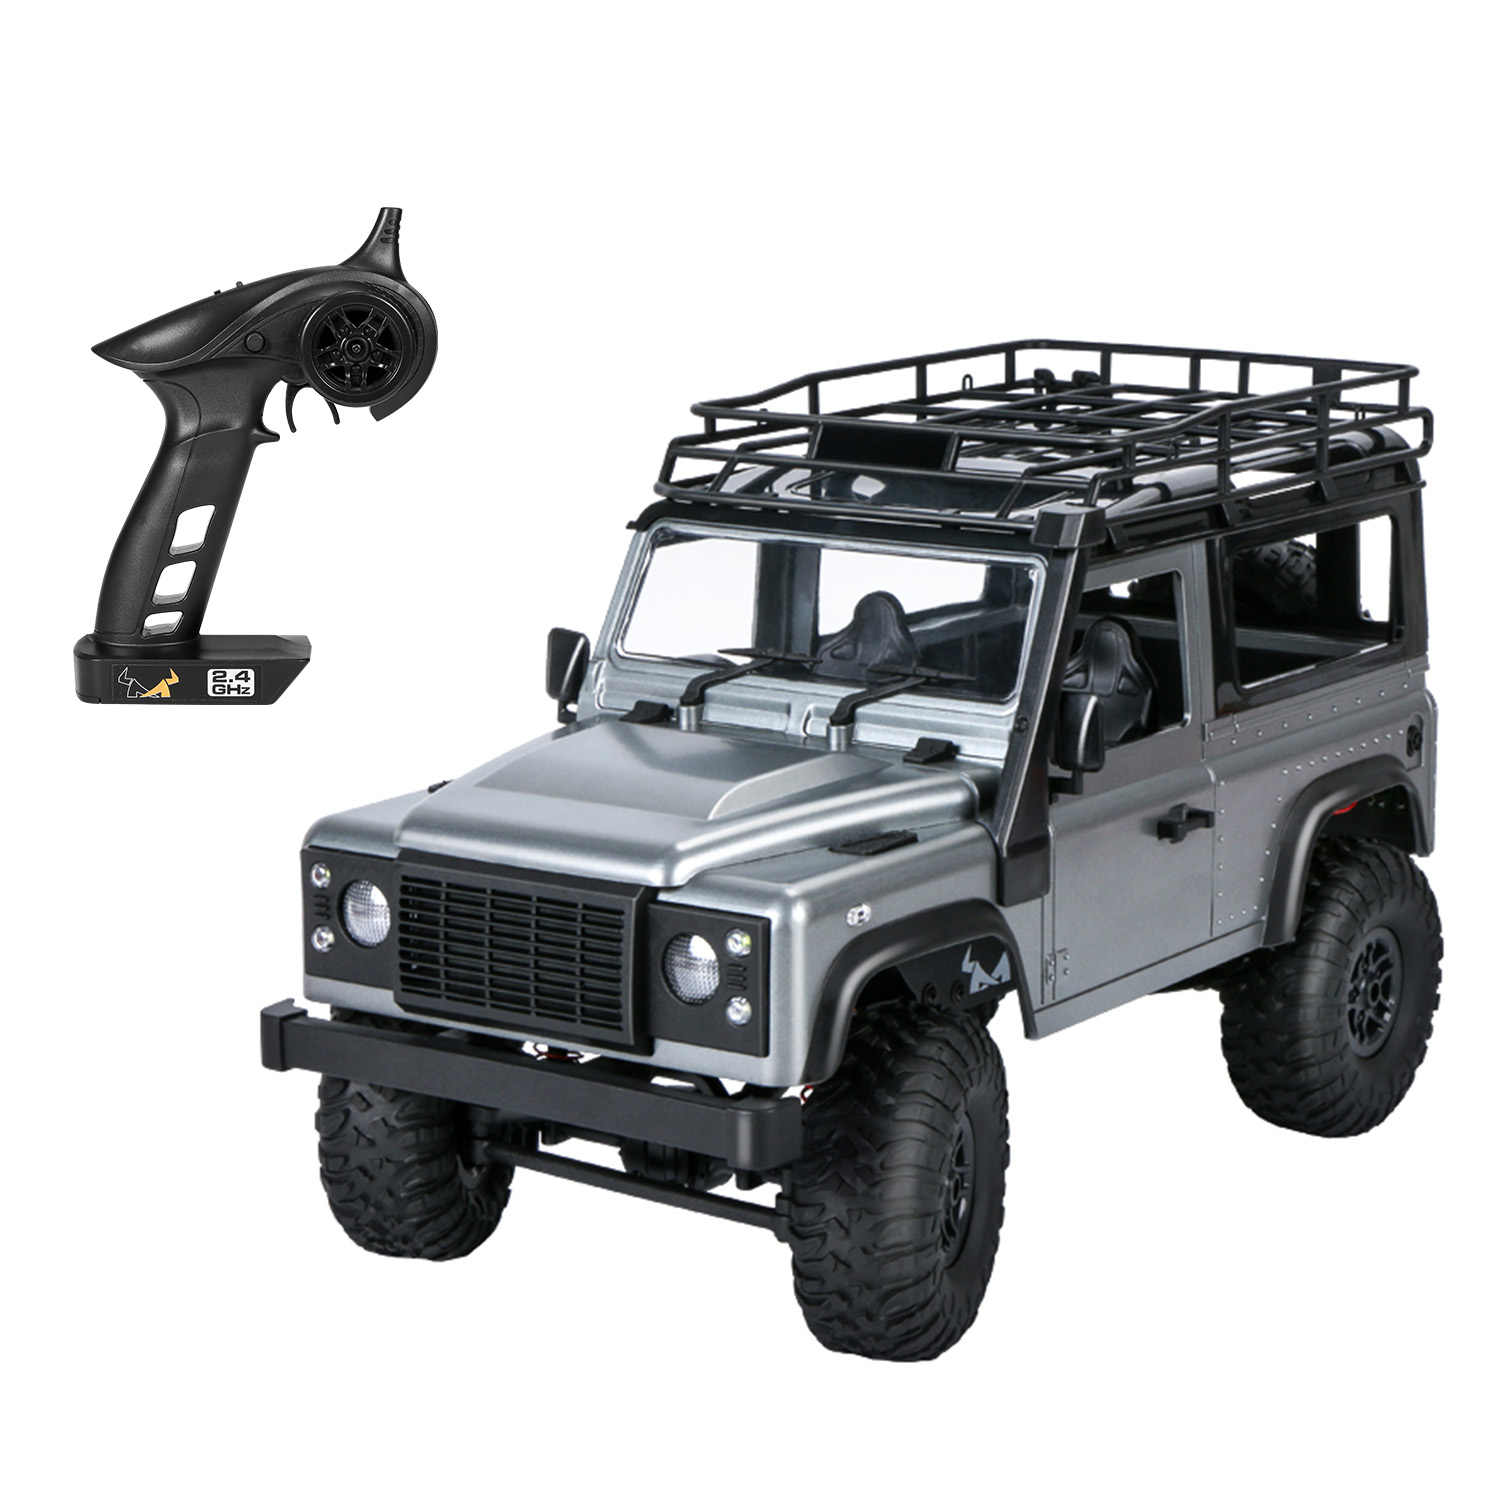 MN 99s 2.4G 1//12 4WD RTR Crawler RC Car Off-Road Buggy For Land Rover Vehicle